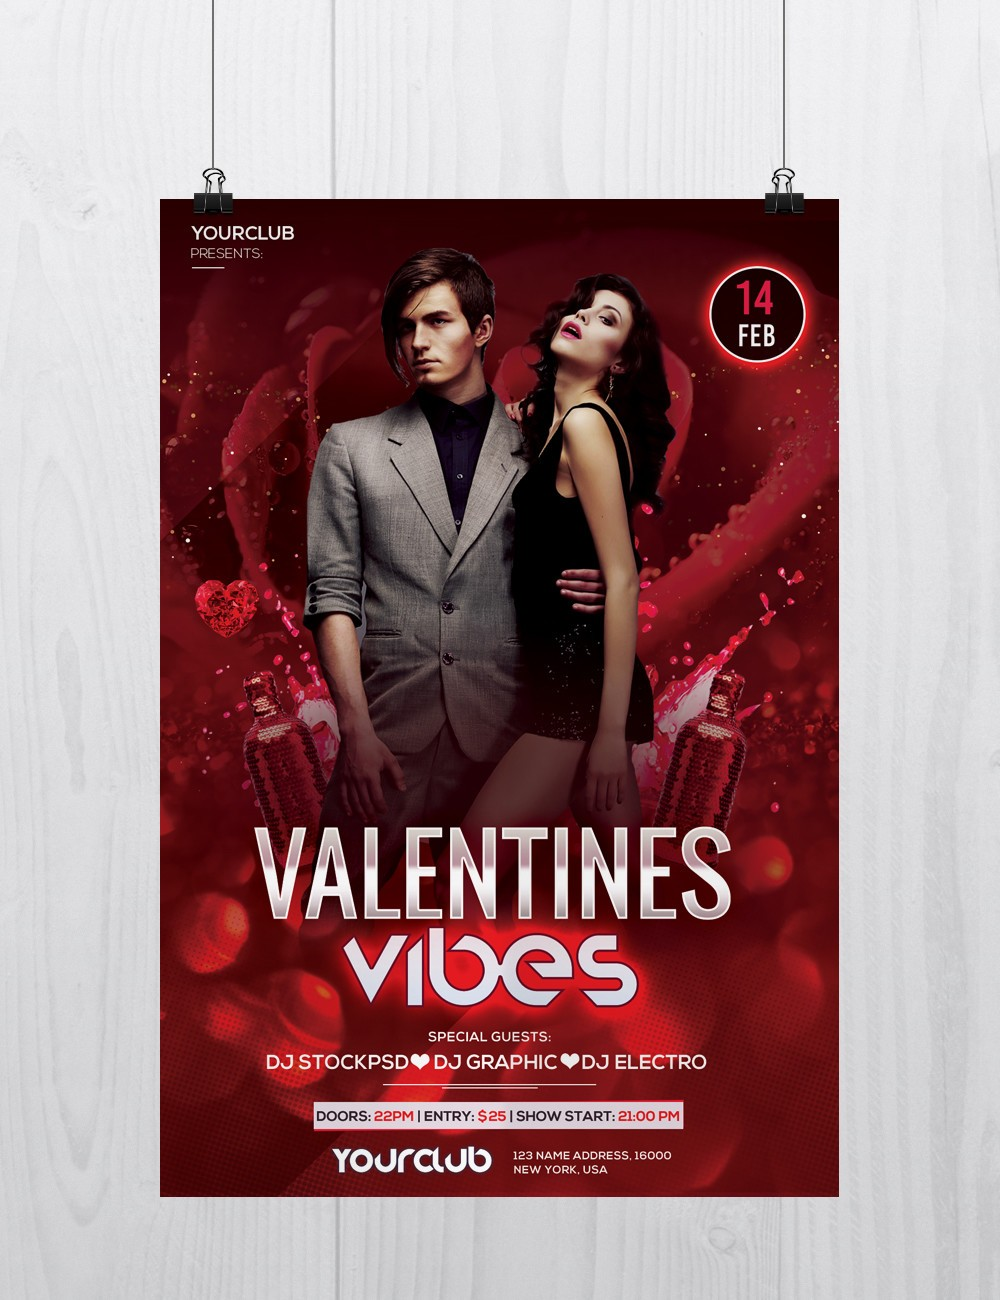 Stockpsd free psd flyers brochures and more download free valentines vibes free psd flyer template to download pronofoot35fo Choice Image